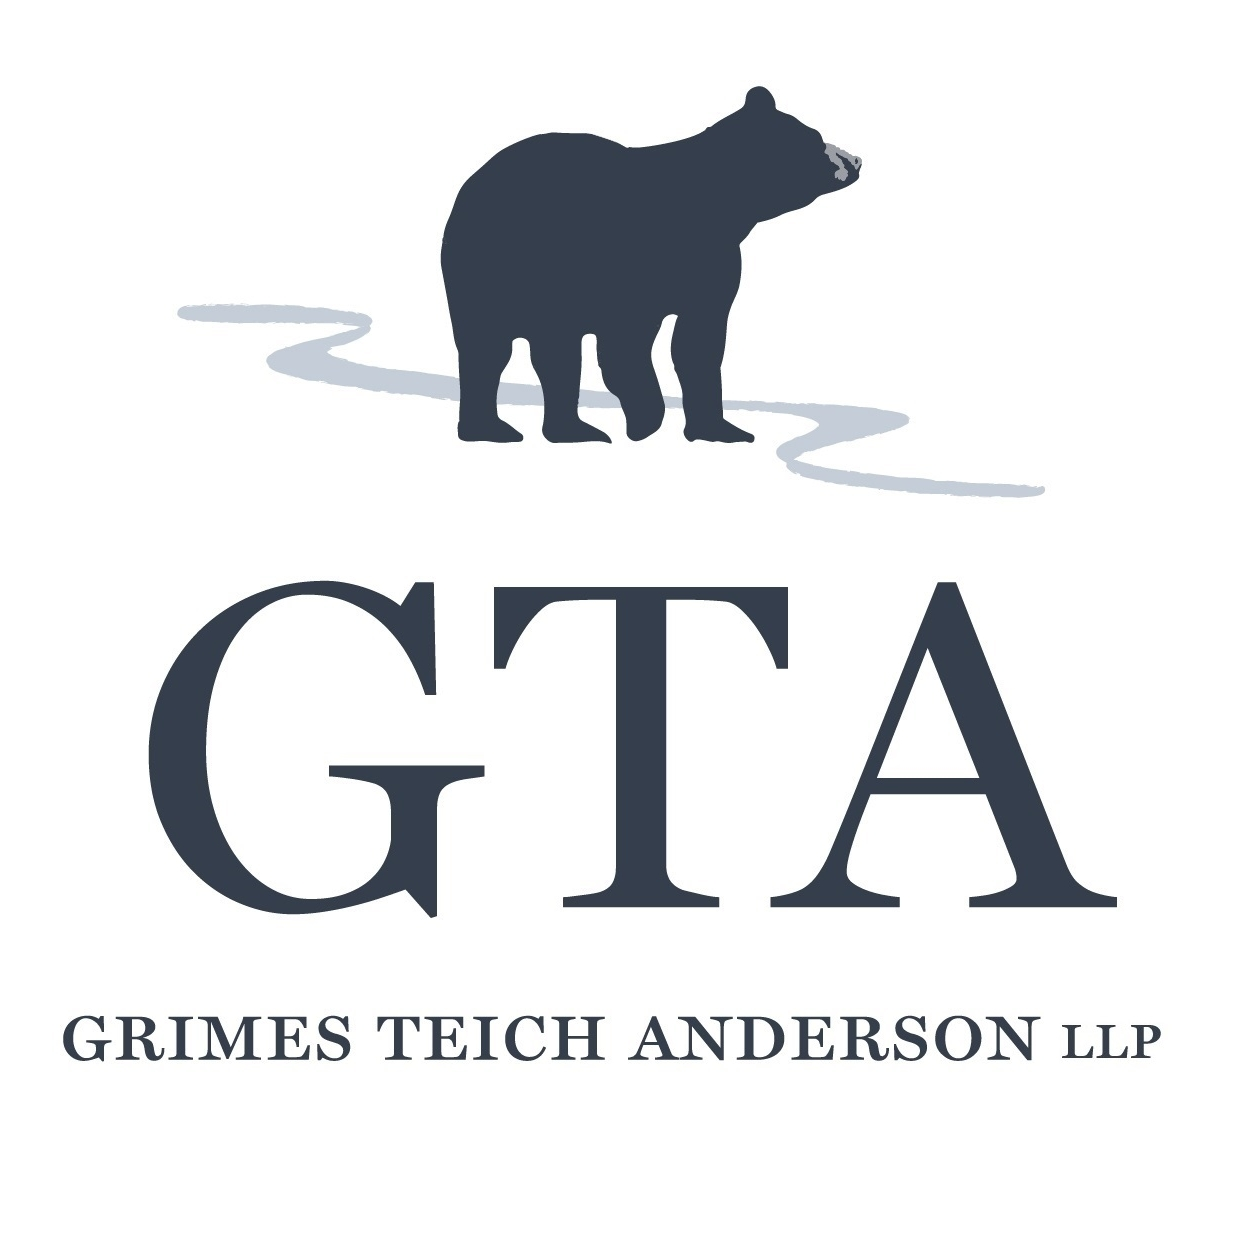 Grimes Teich Anderson LLP image 4